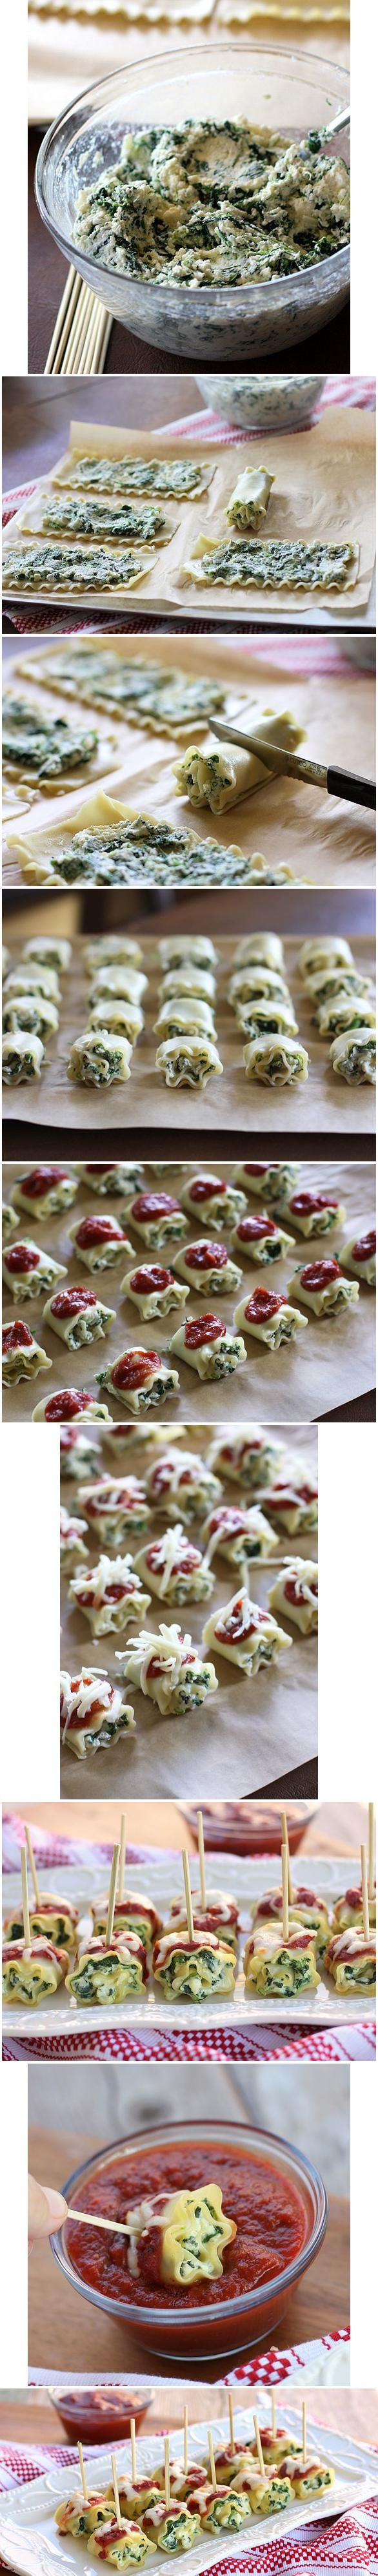 OP: Step-by-step recipes:  Mini spinach lasagna roll ups